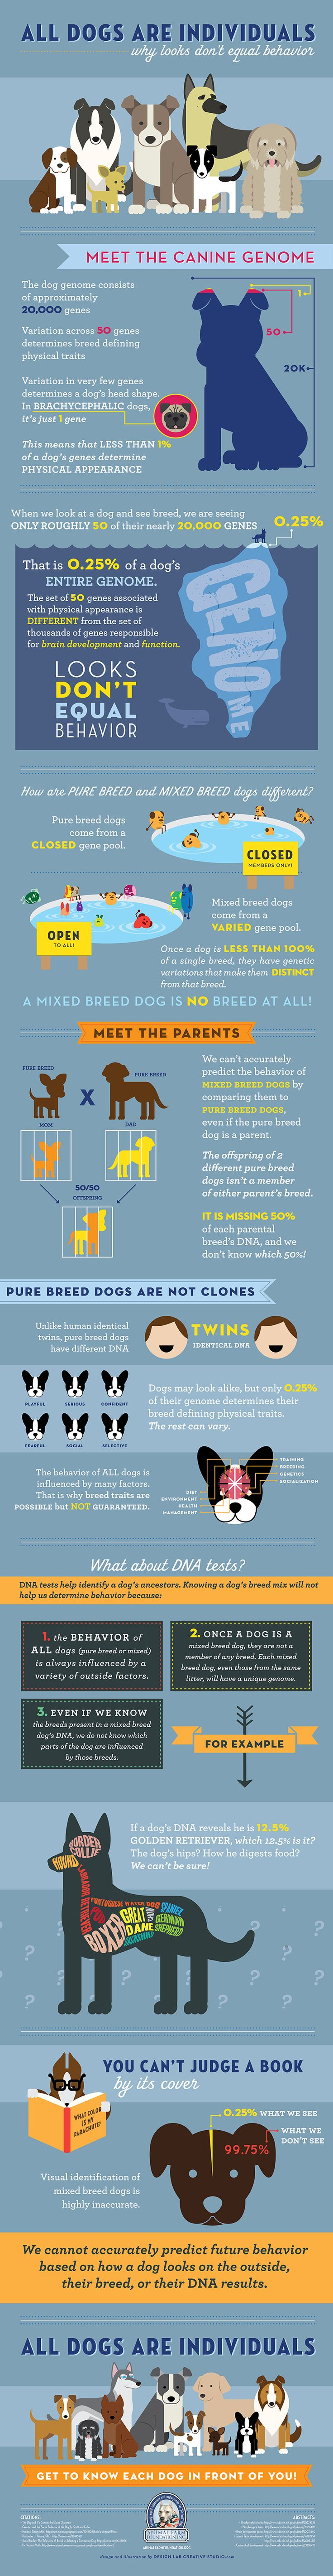 Illustration and infographic design layout for Animal Farm Foundation by Design Lab Creative Studio All Dogs Are Individuals [INFOGRAPHIC]: Why Looks and Breed Don't Equal Behavior